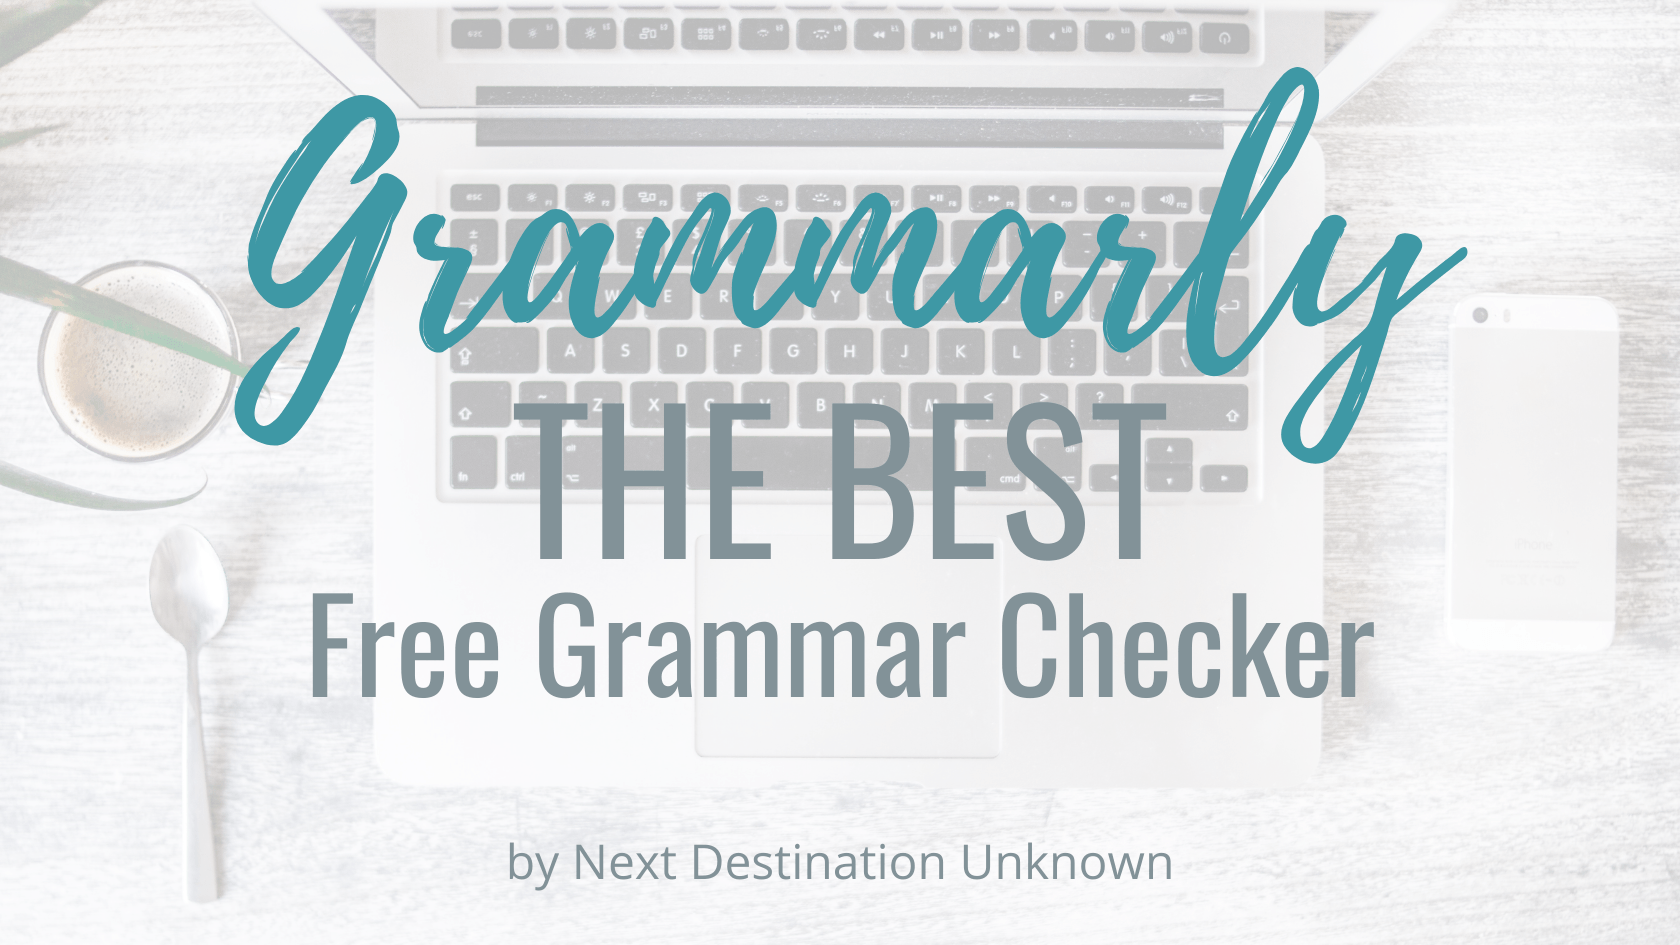 Grammarly: The Best Free Grammar Checker